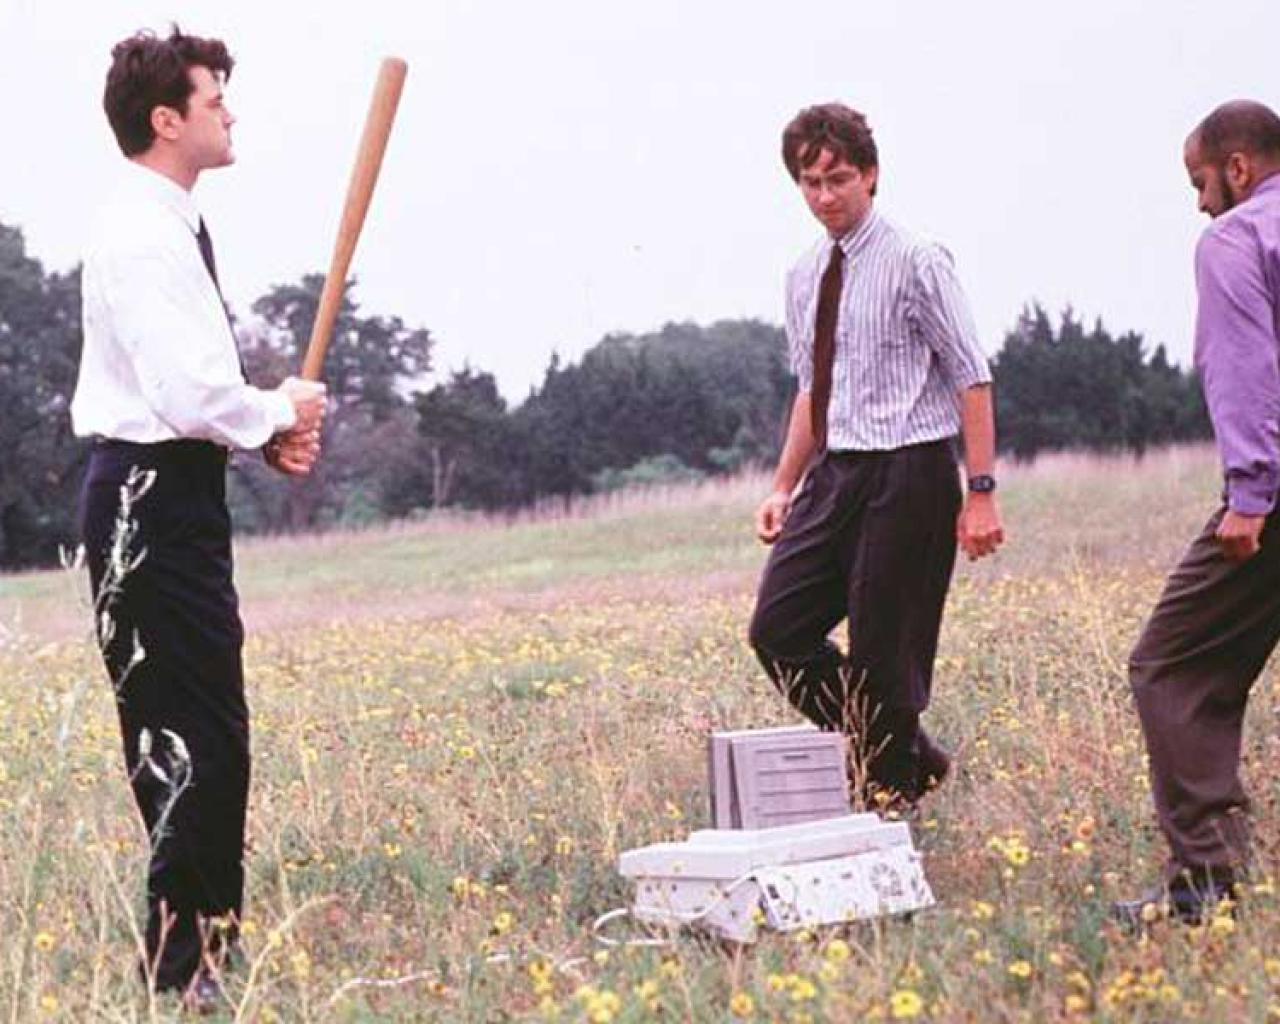 Office space wallpaper HQ WALLPAPER - (#175300)